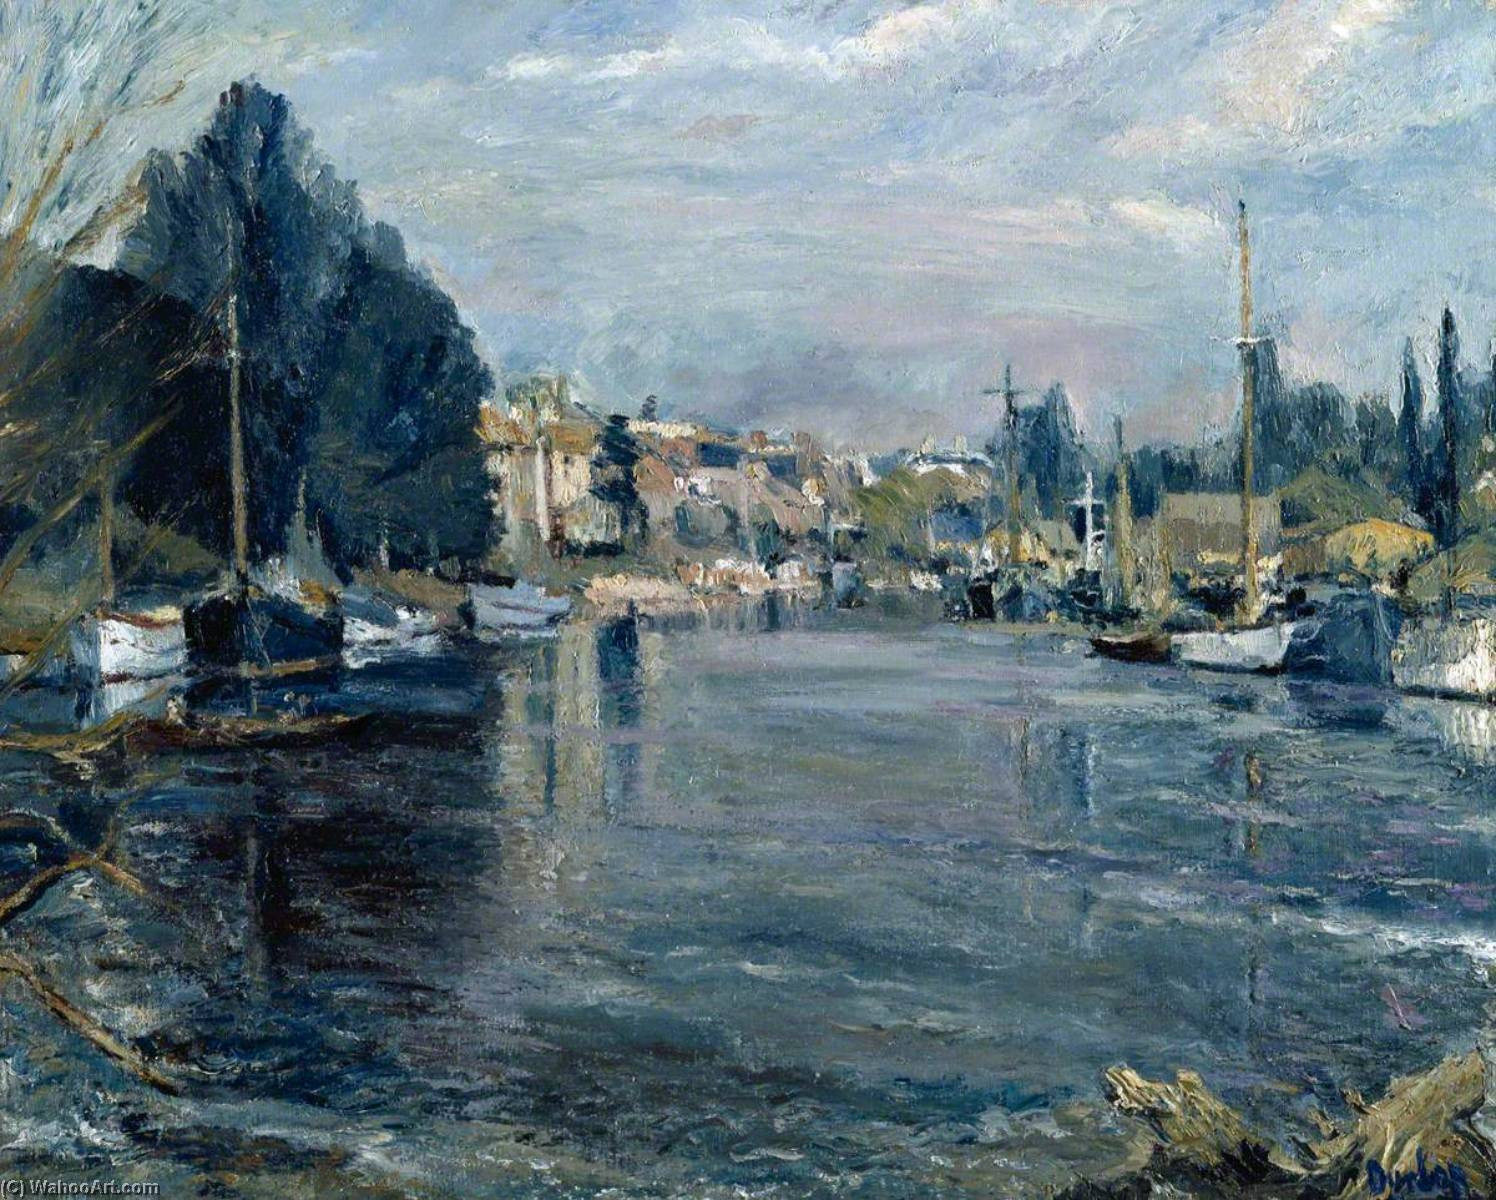 The Thames at Sunbury, Oil On Canvas by Ronald Ossory Dunlop (1894-1973, Ireland)